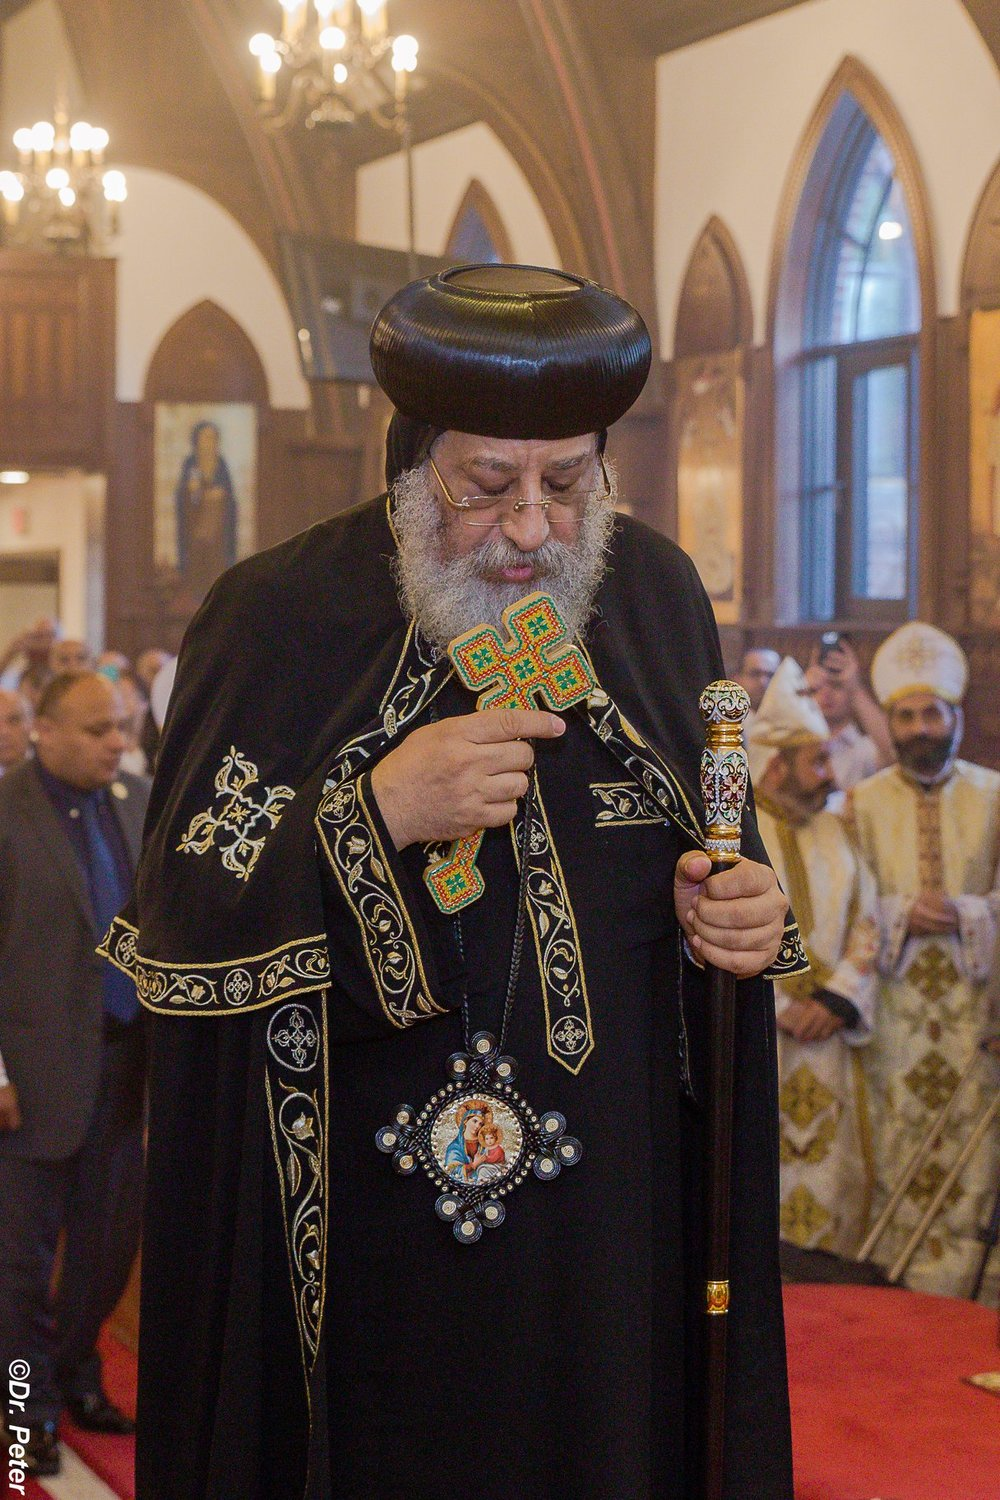 His Holiness Pope Tawadros II on his visit to St.Mary & St.Moses Coptic Orthodox Church on September 17, 2018